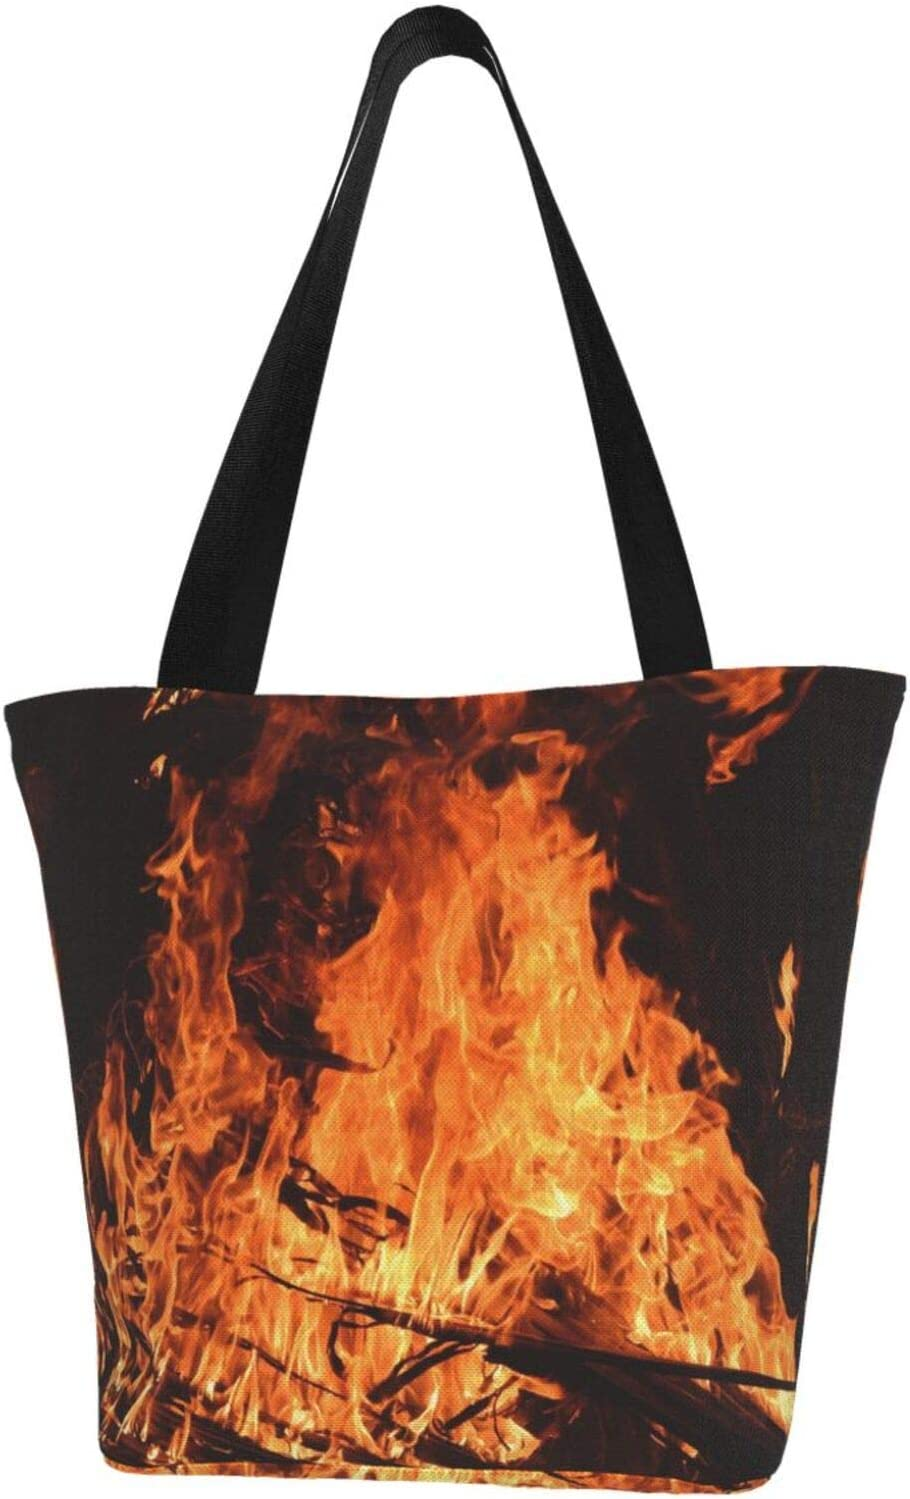 AKLID Financial sales sale Fire Bonfire Flame New arrival Extra Tote Large Resistant Water Canvas